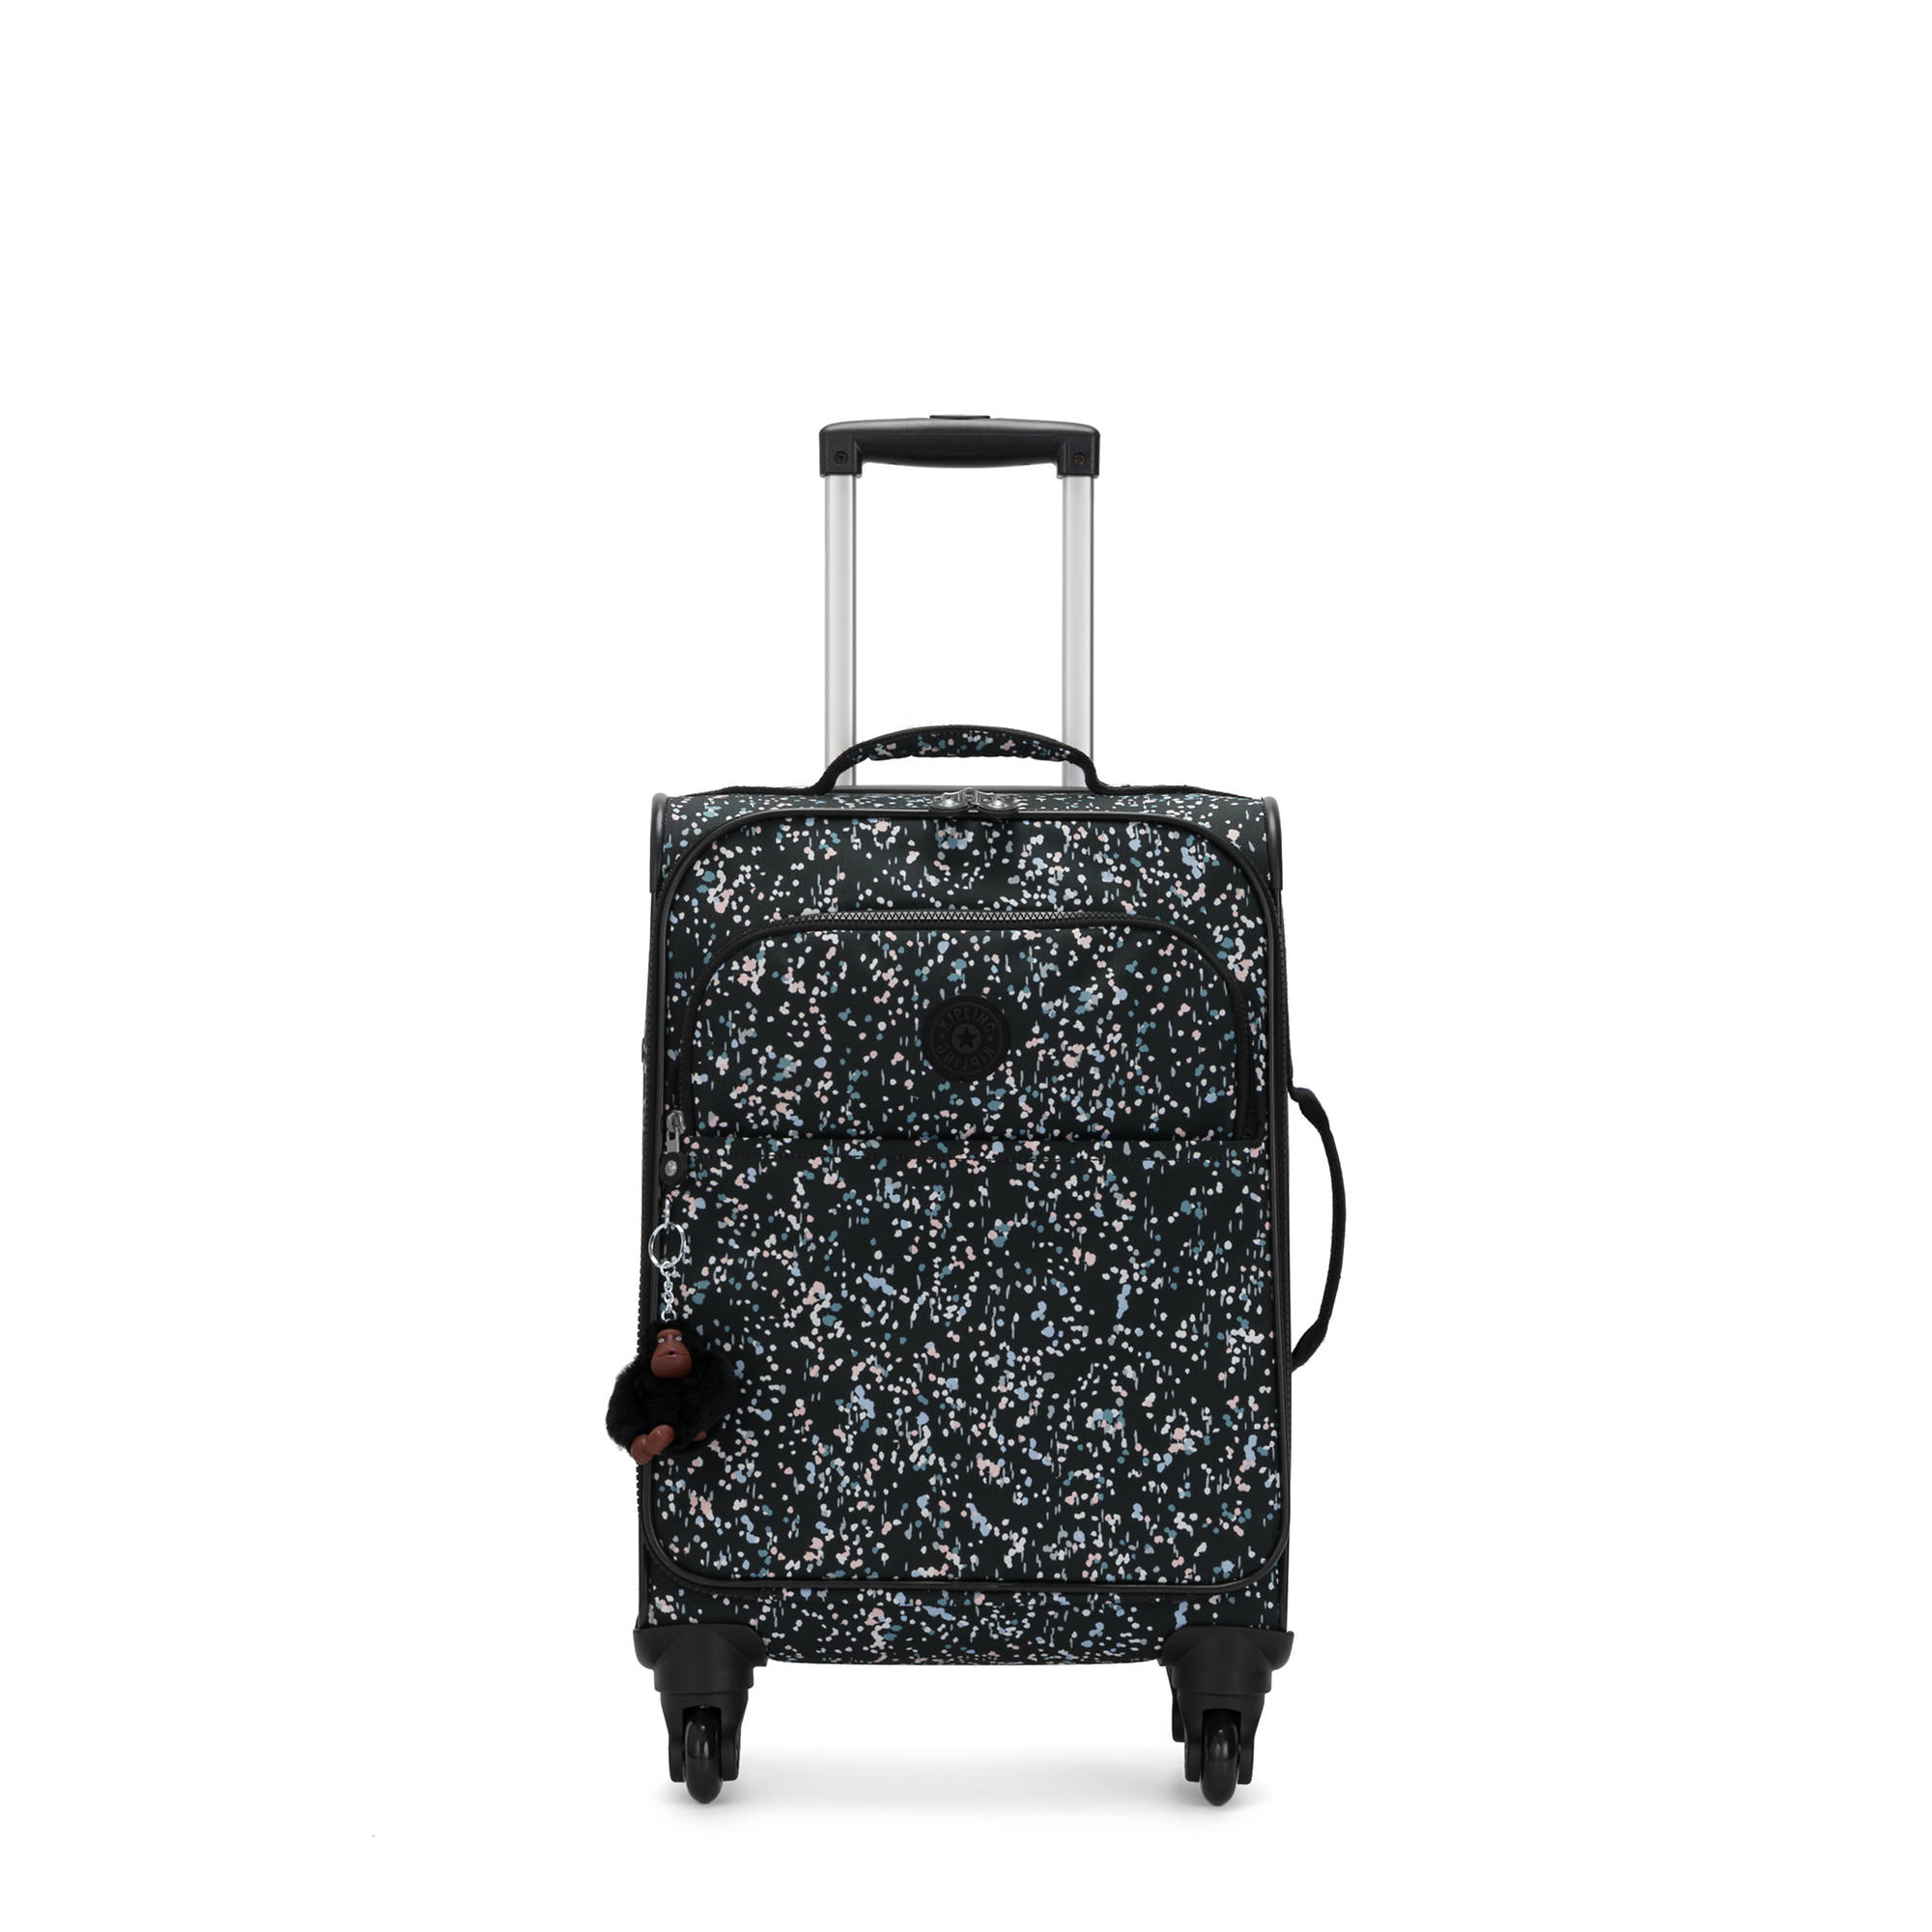 Kipling Parker Small Printed Rolling Luggage